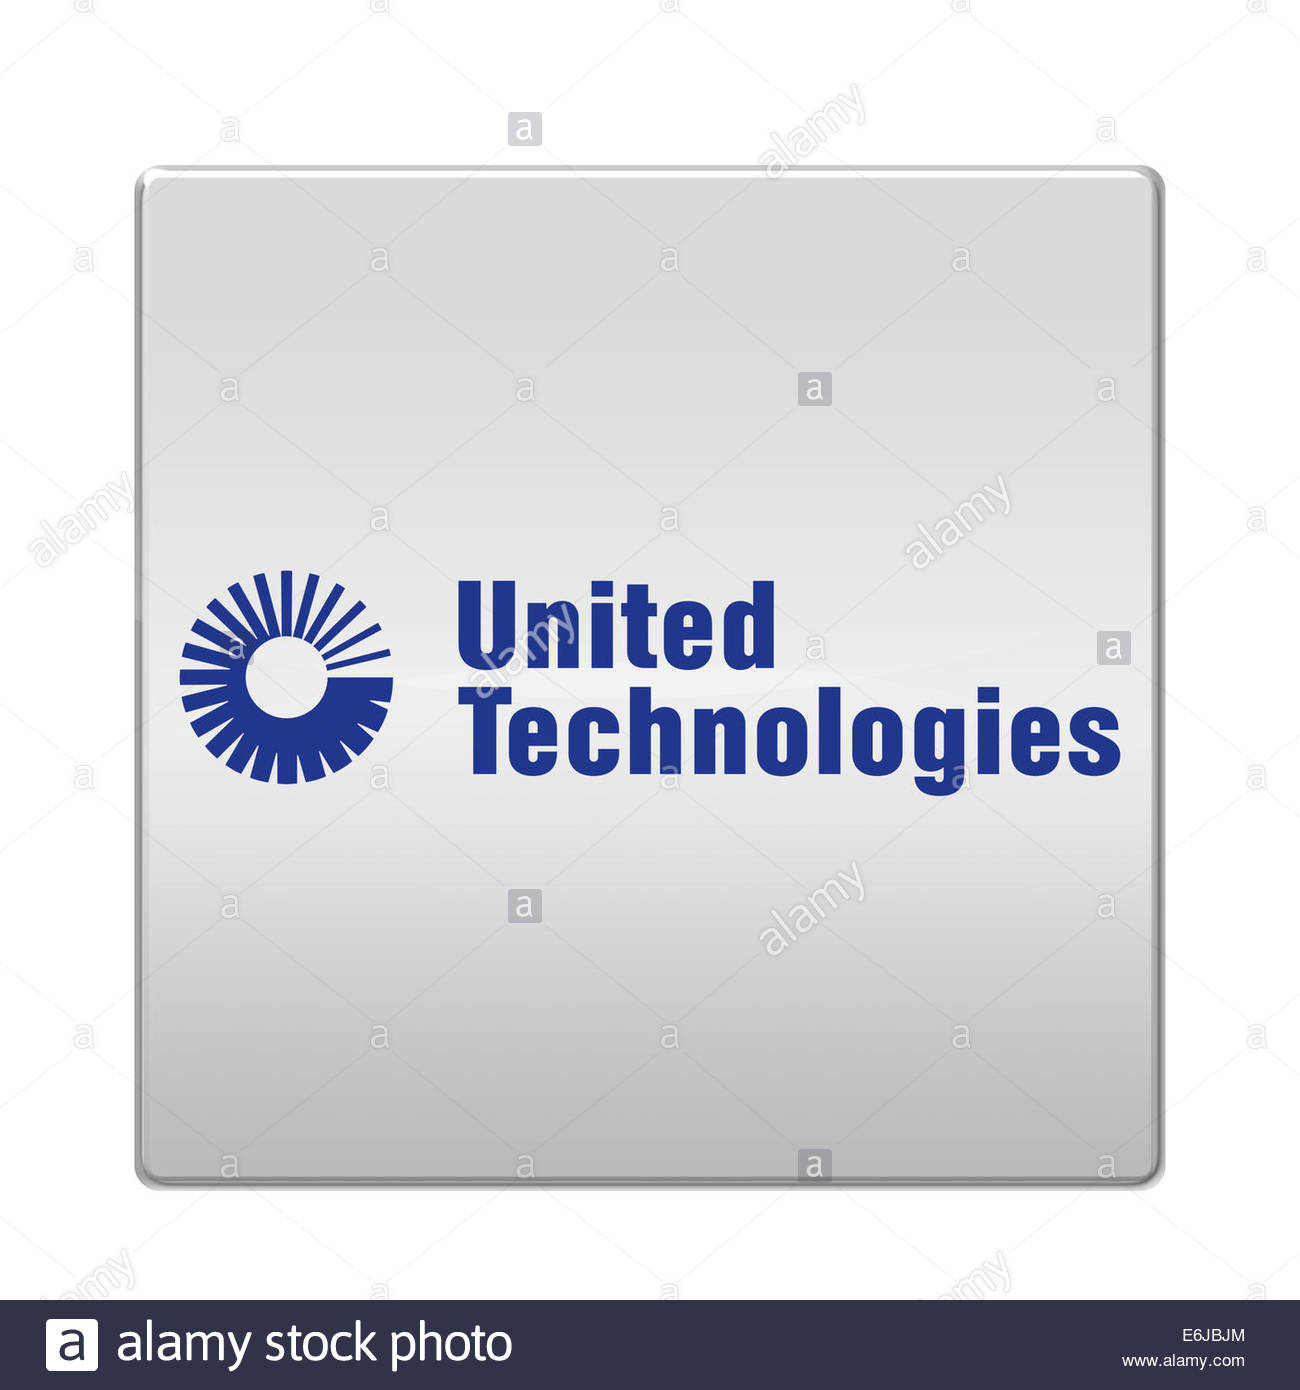 United Technologies Corporation logo icon isolated app button - Stock Image